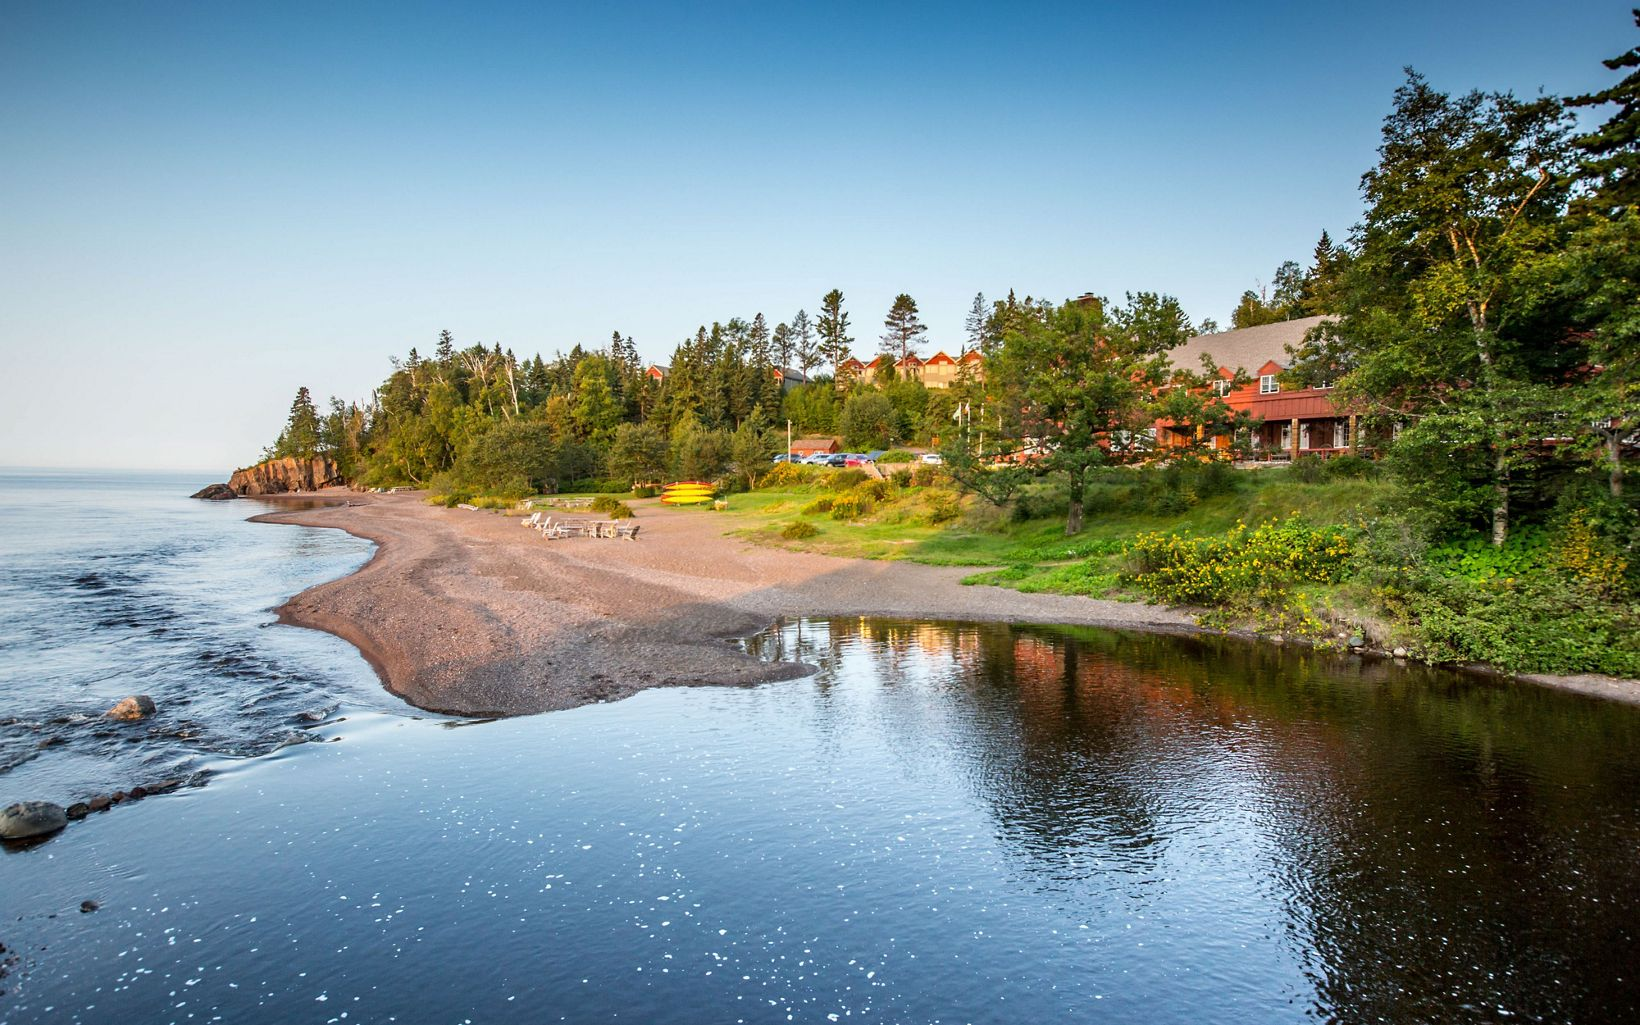 A lodge building is nestled amongst the green conifers along the shores of Lake Superior.